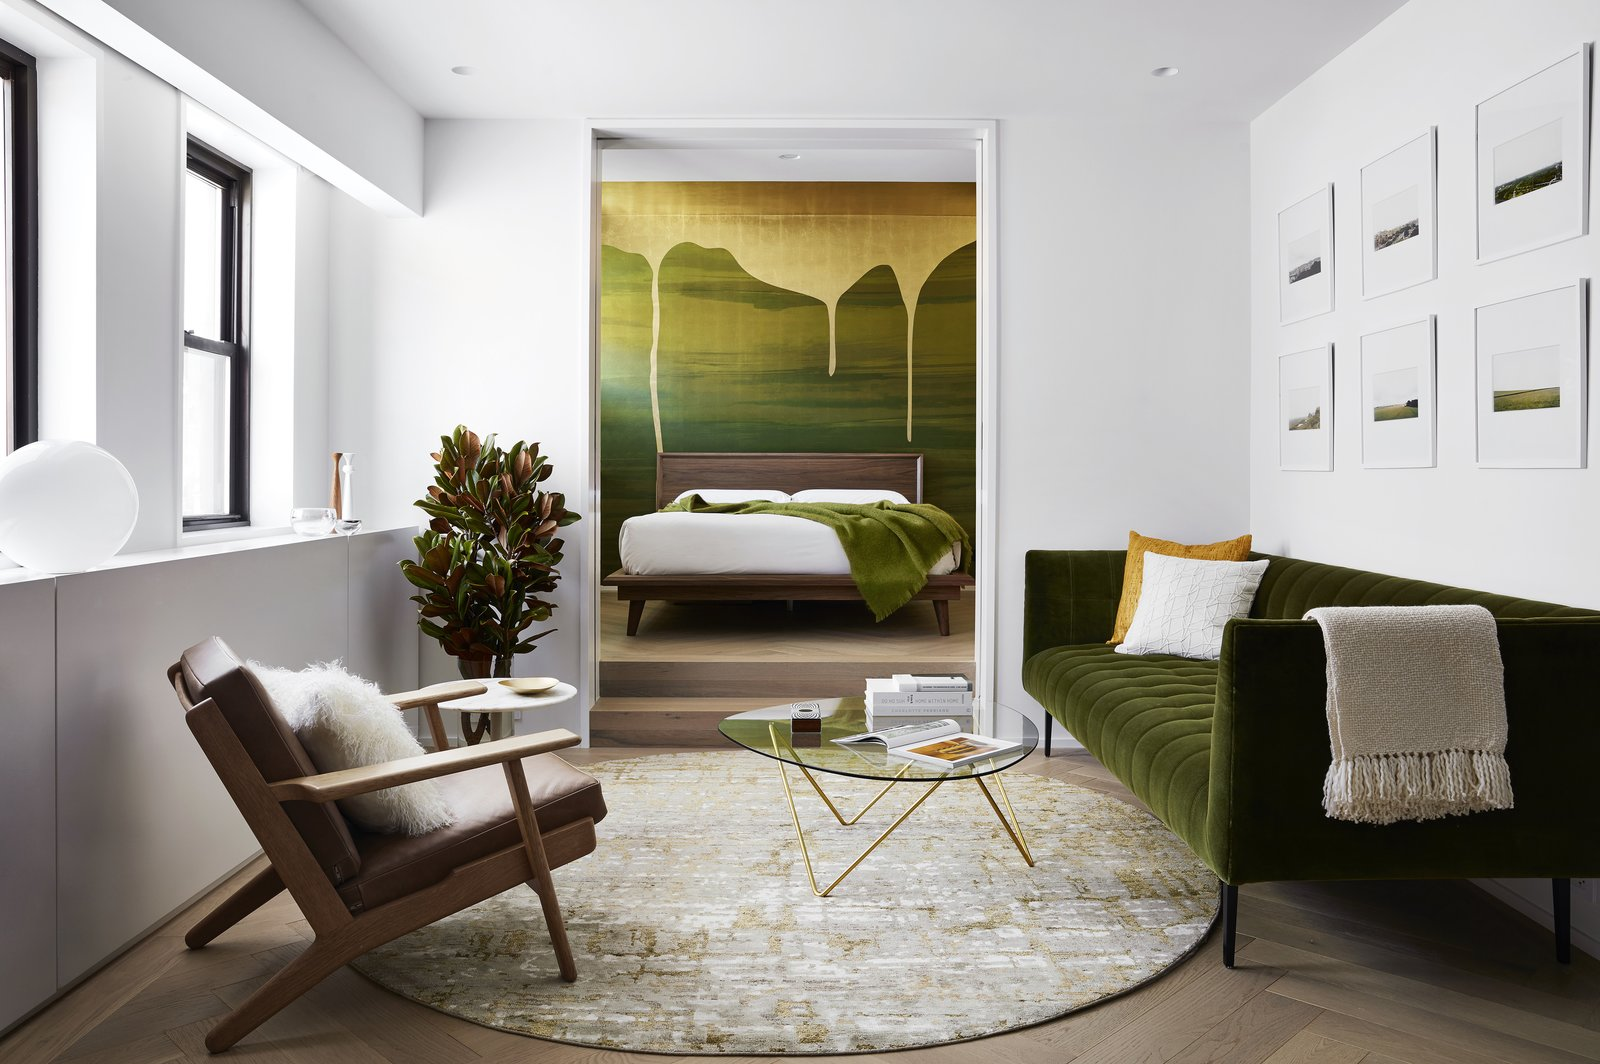 Stadt Architecture's Christopher Kitterman transformed a generic studio in Chelsea into a bright one-bedroom apartment for Vancouver couple Dale Steele and Dan Nguyen. The living room features a Hans Wegner GE290 lounge chair upholstered in leather by Spinneybeck, a round rug and Cobble Hill Adams sofa from ABC Carpet & Home, a Pedrera coffee table by Gubi, and a Bob side table by Poltrona Frau. An automated lift raises a TV from inside the custom millwork under the window. Acid-etched tempered glass doors lead to the bedroom.